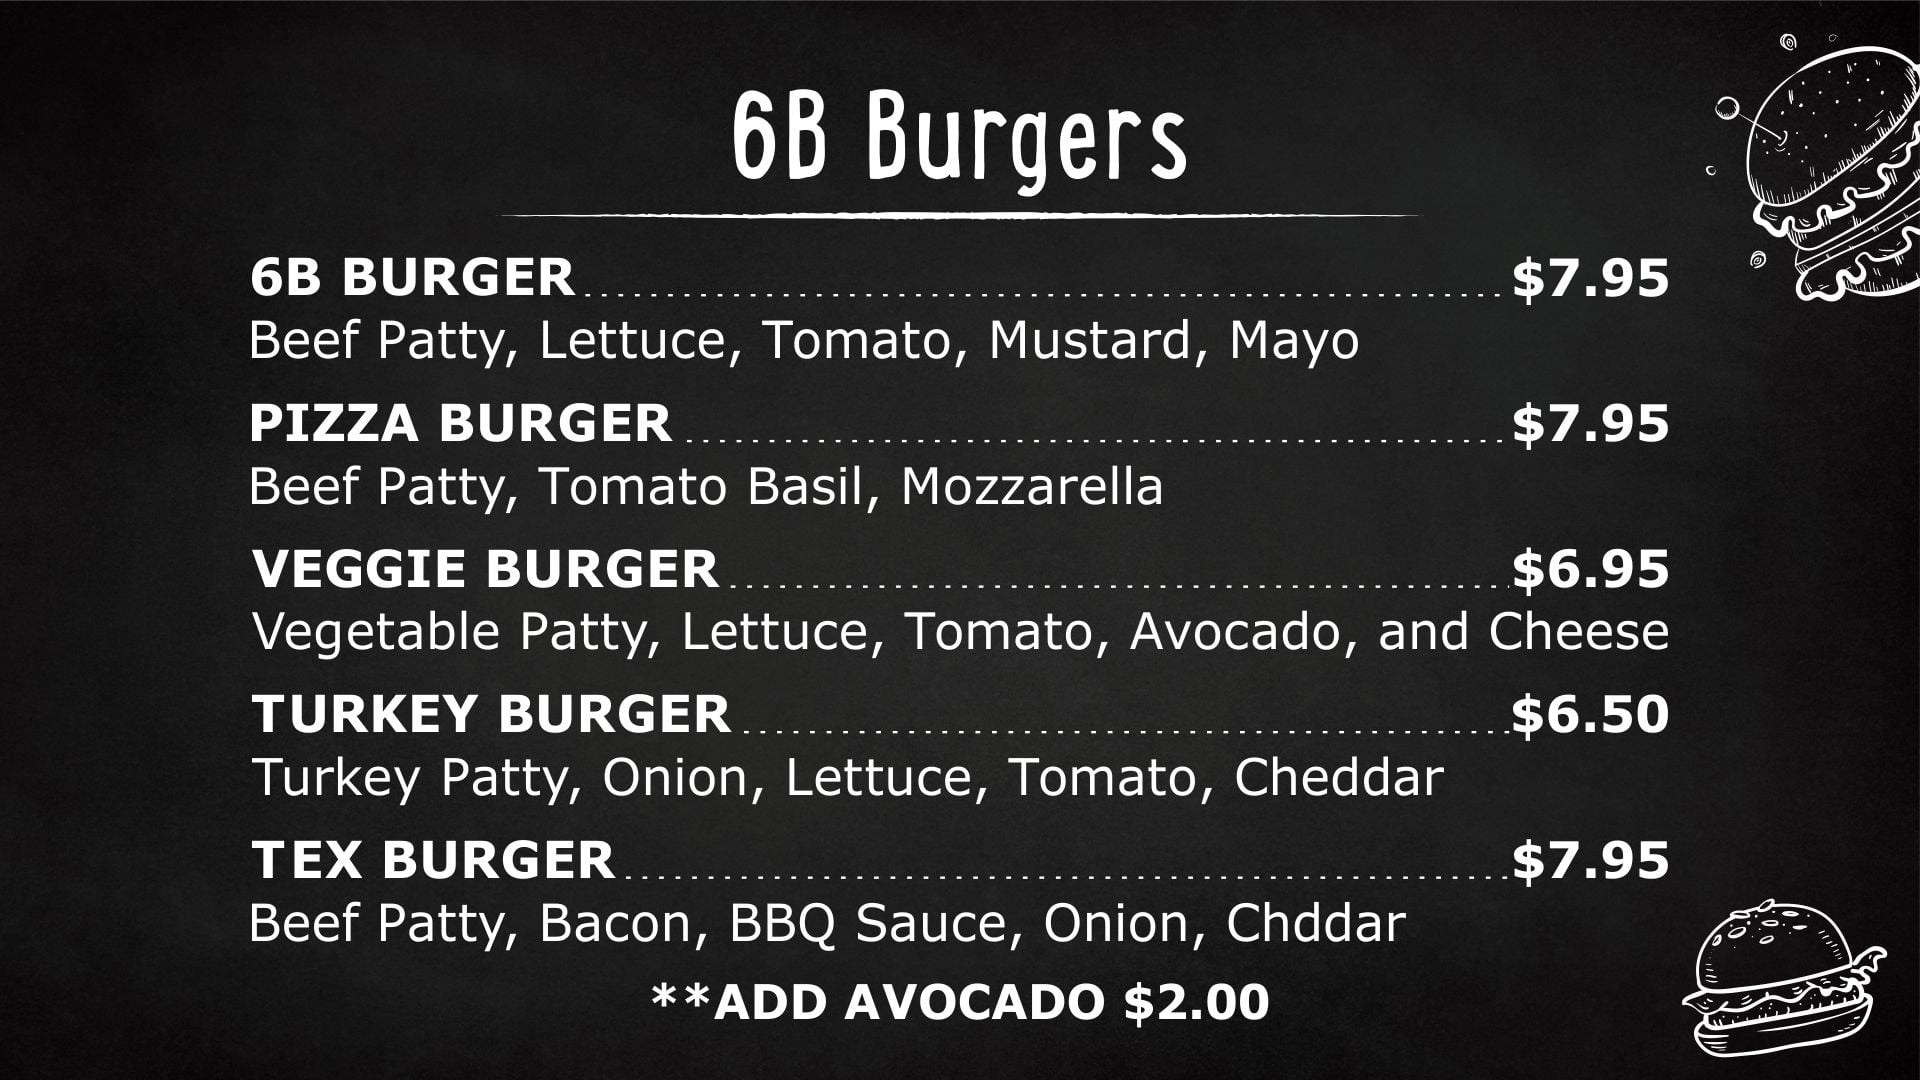 6b Burgers by GoDesign.pk